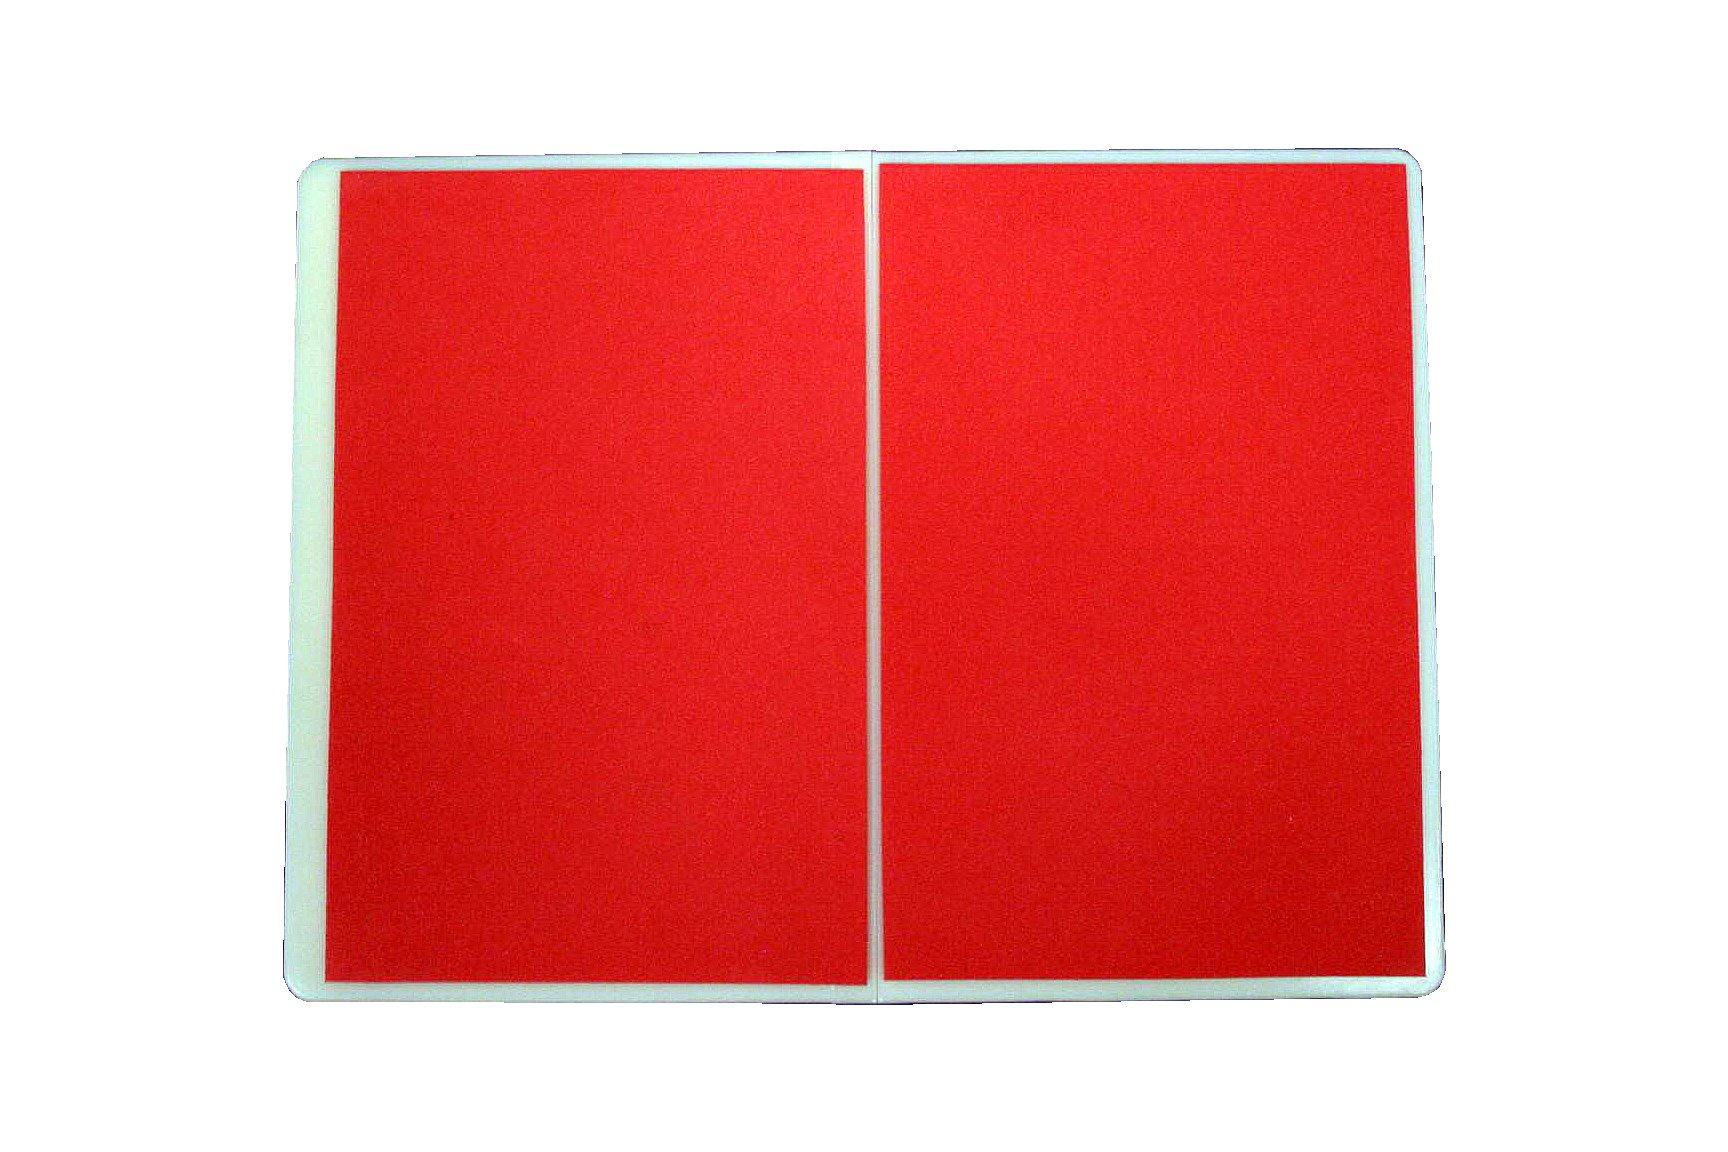 Ace Martial Arts Supply Rebreakable Board Taekwondo, MMA, Karate-Black (Red) by Ace Martial Arts Supply